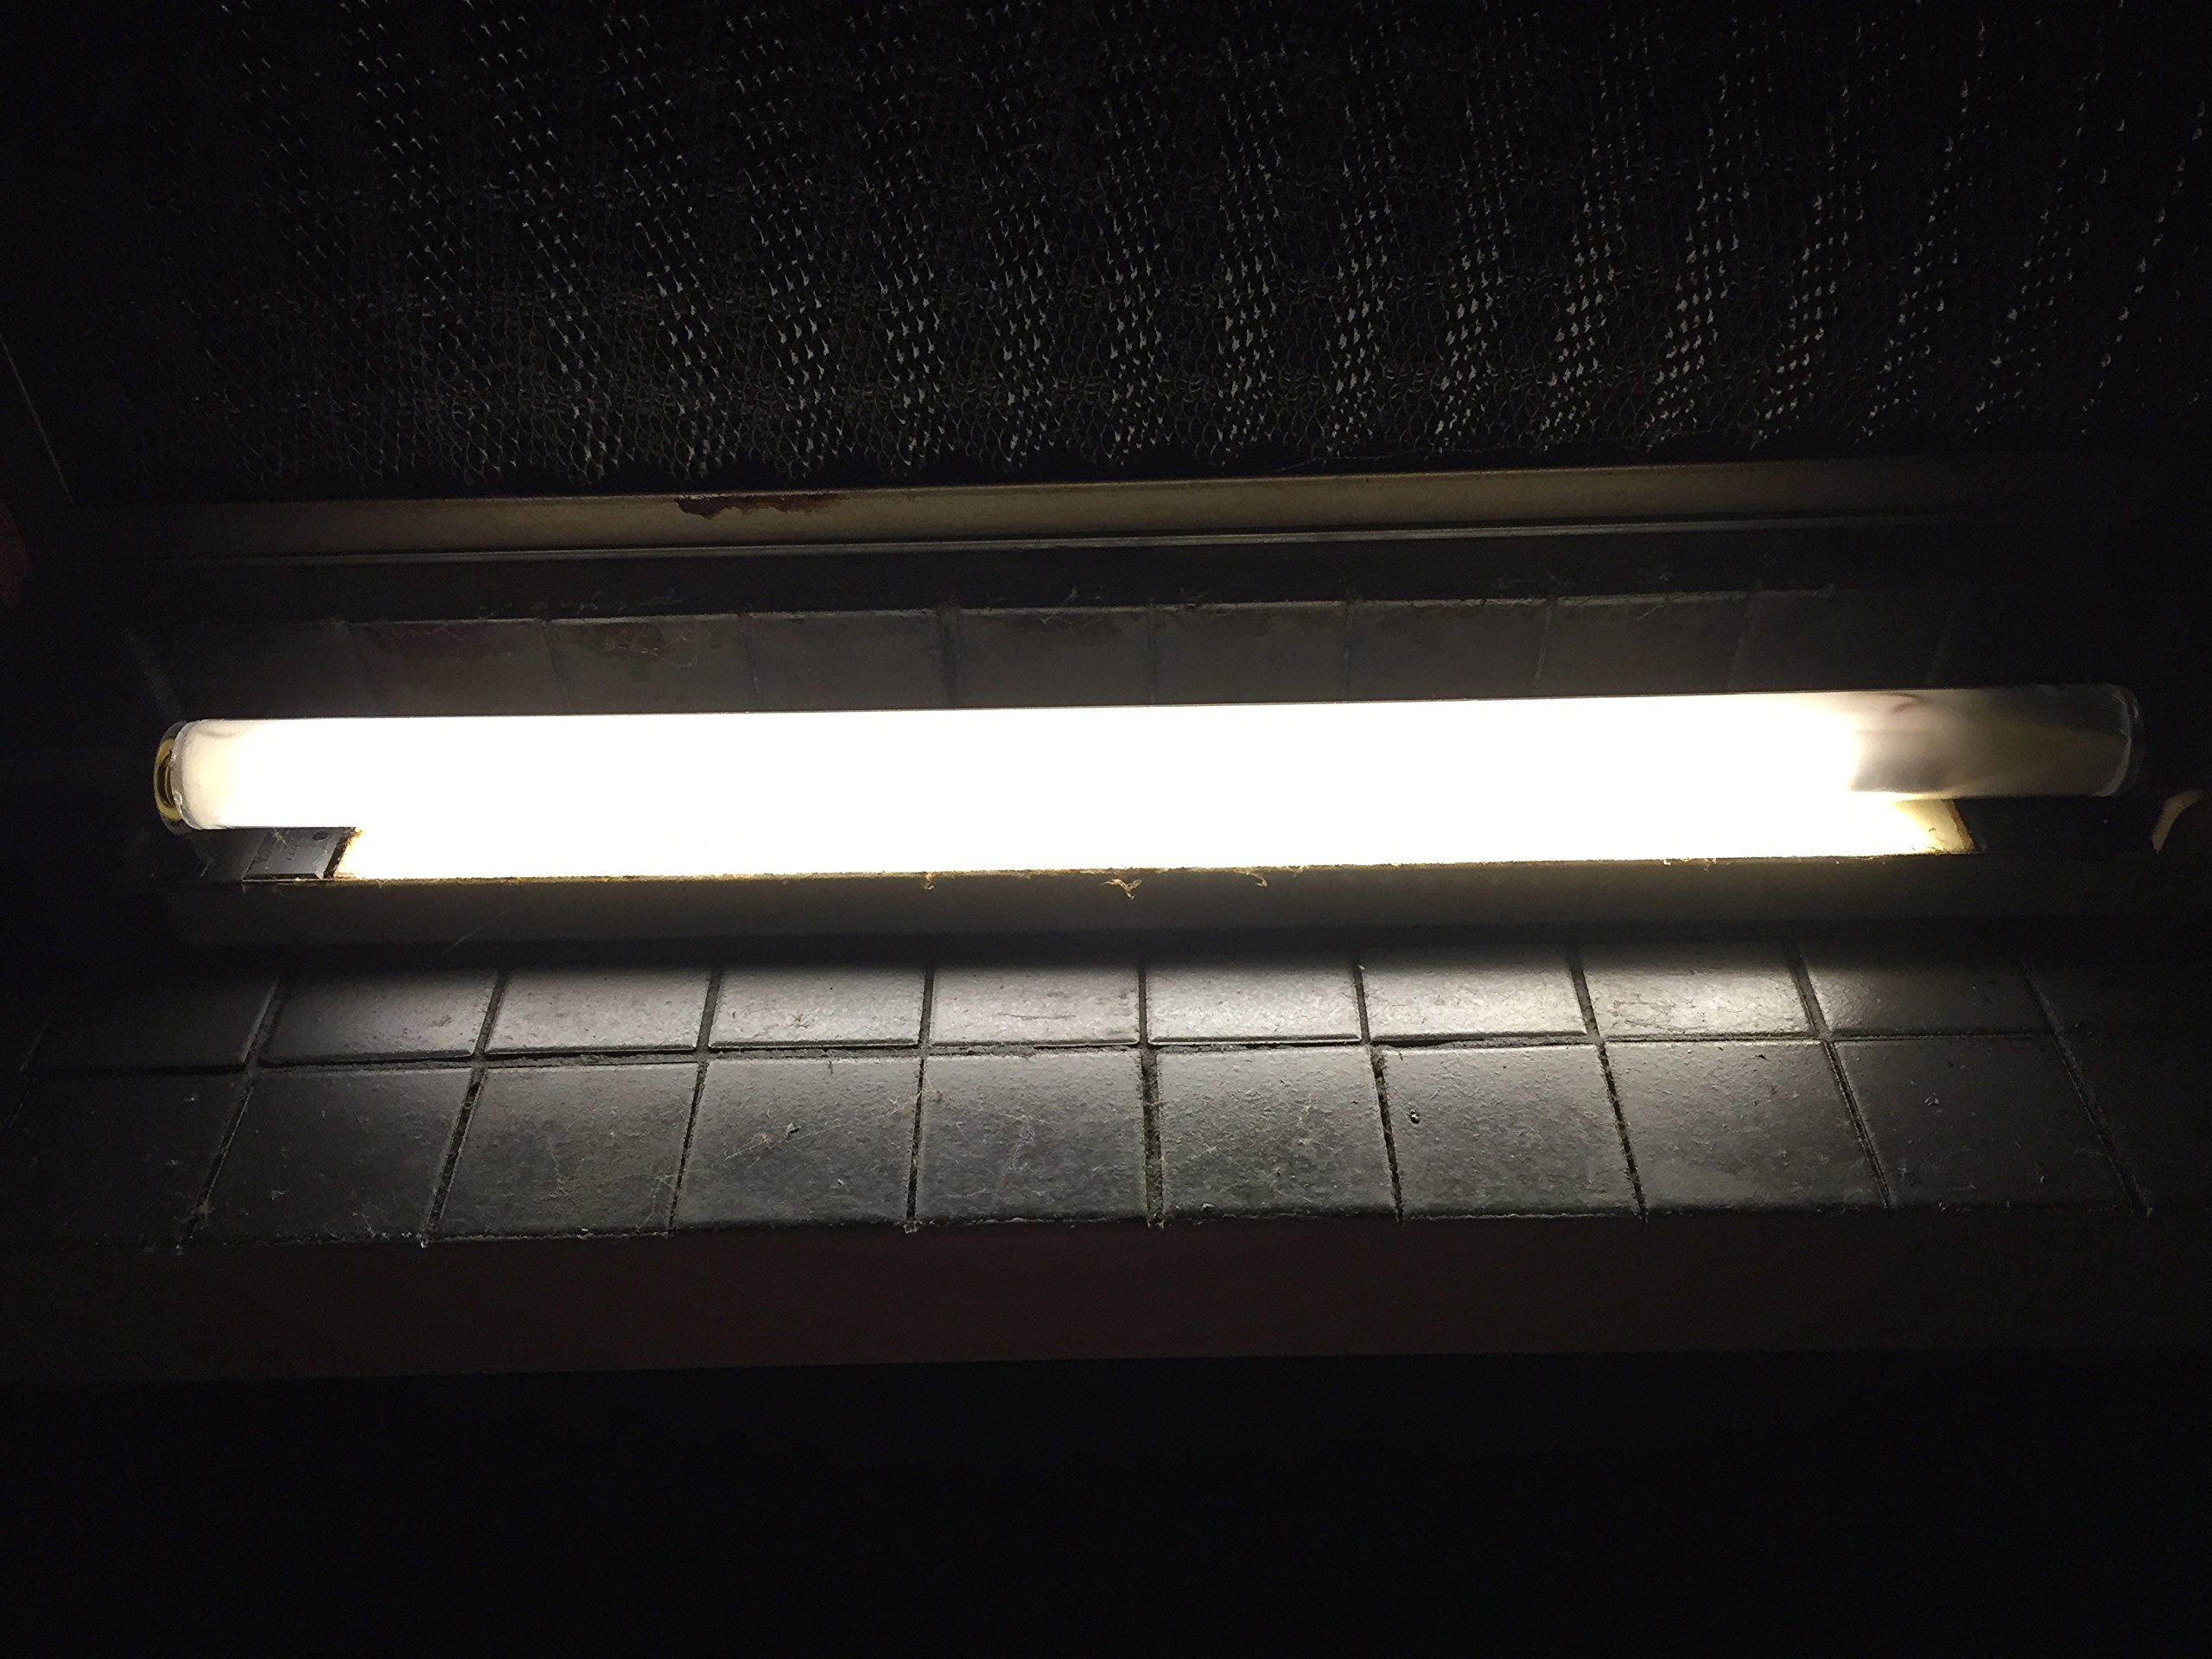 60W LUMILINE CLEAR 17.75INCH 17266 507060 LI60-2 by LumilineLives (Image #5)